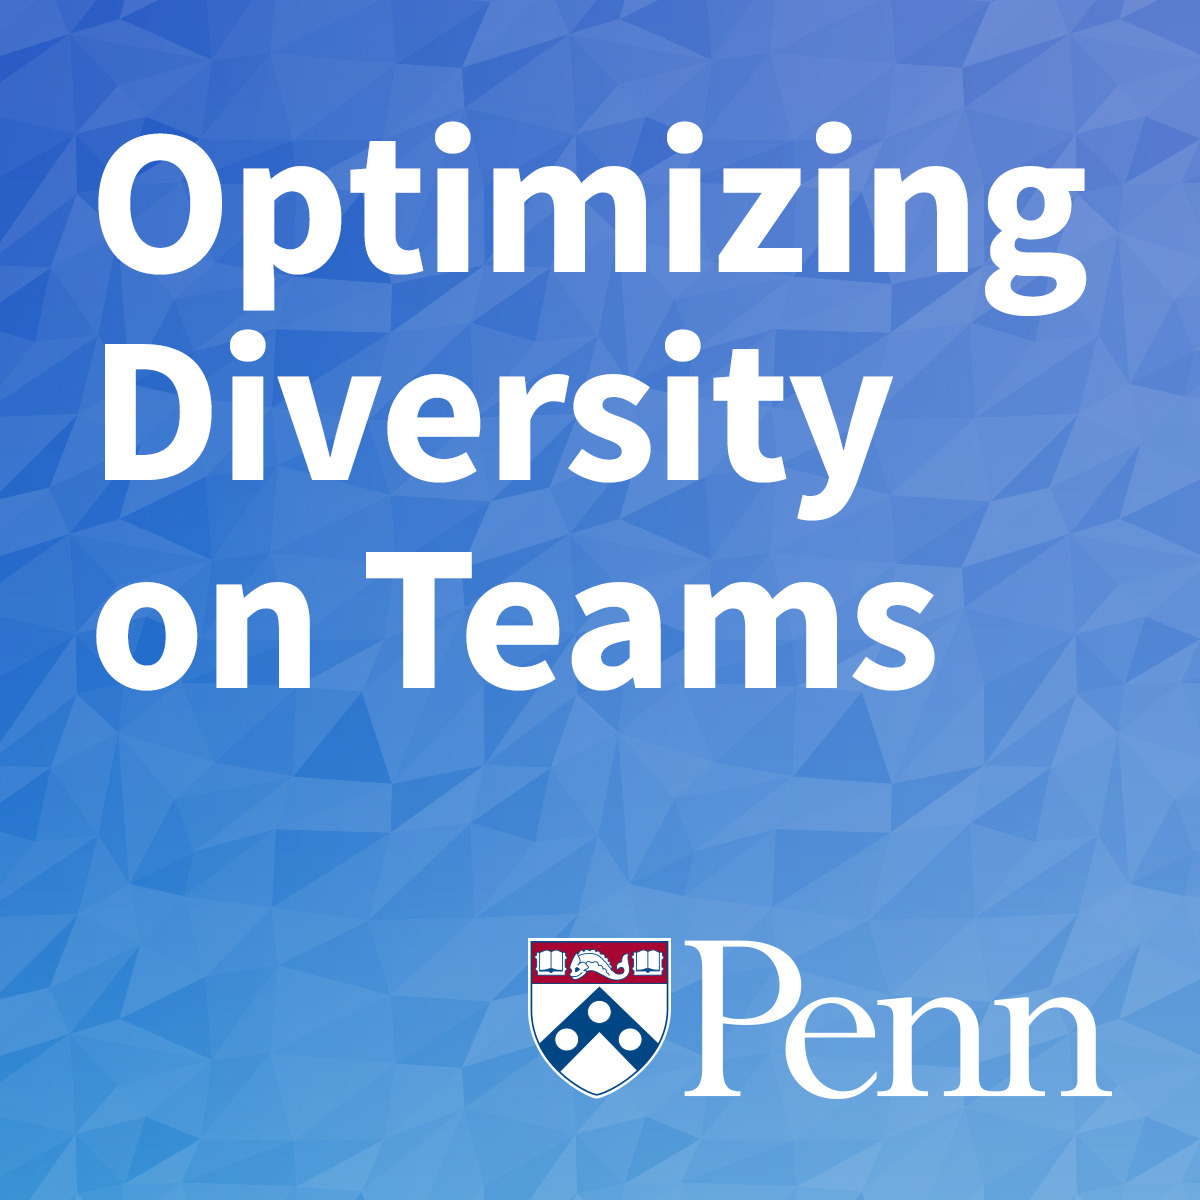 Optimizing Diversity on Teams course image